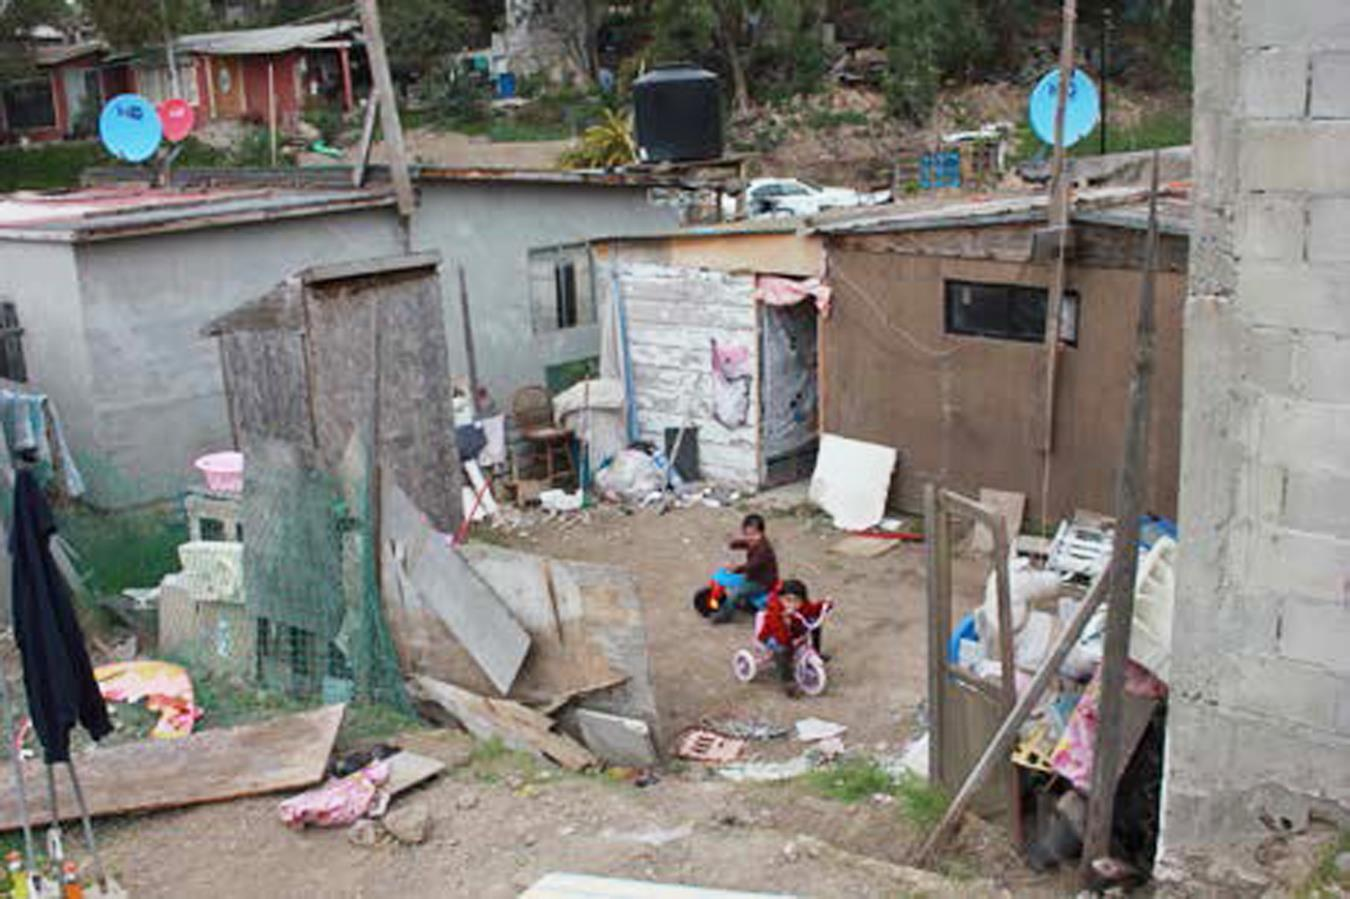 Homes of Hope Mexico - Rotary Club of Canmore